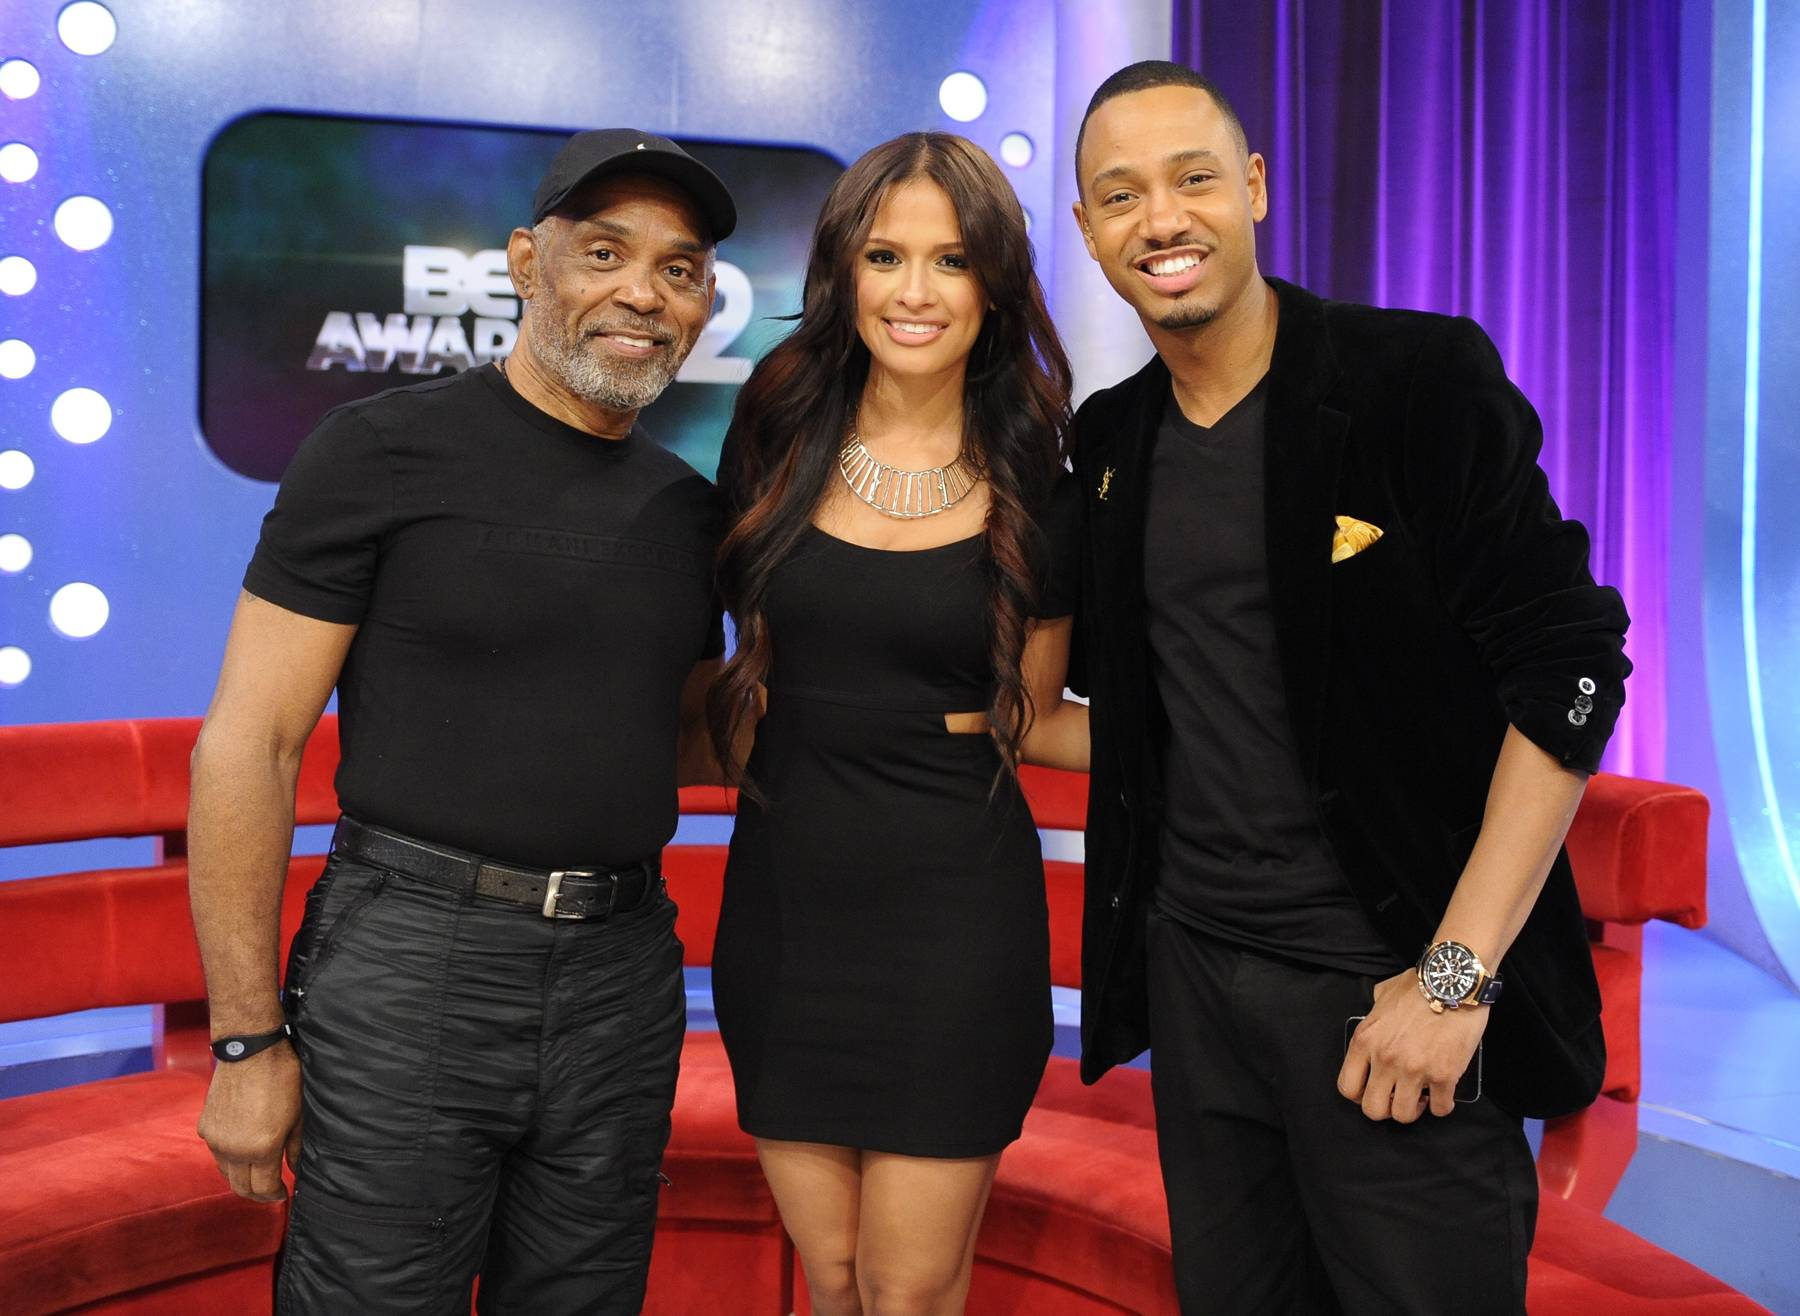 Classic - Frankie Beverly with Rocsi Diaz and Terrence J at 106 & Park, May 22, 2012. (Photo: John Ricard / BET)